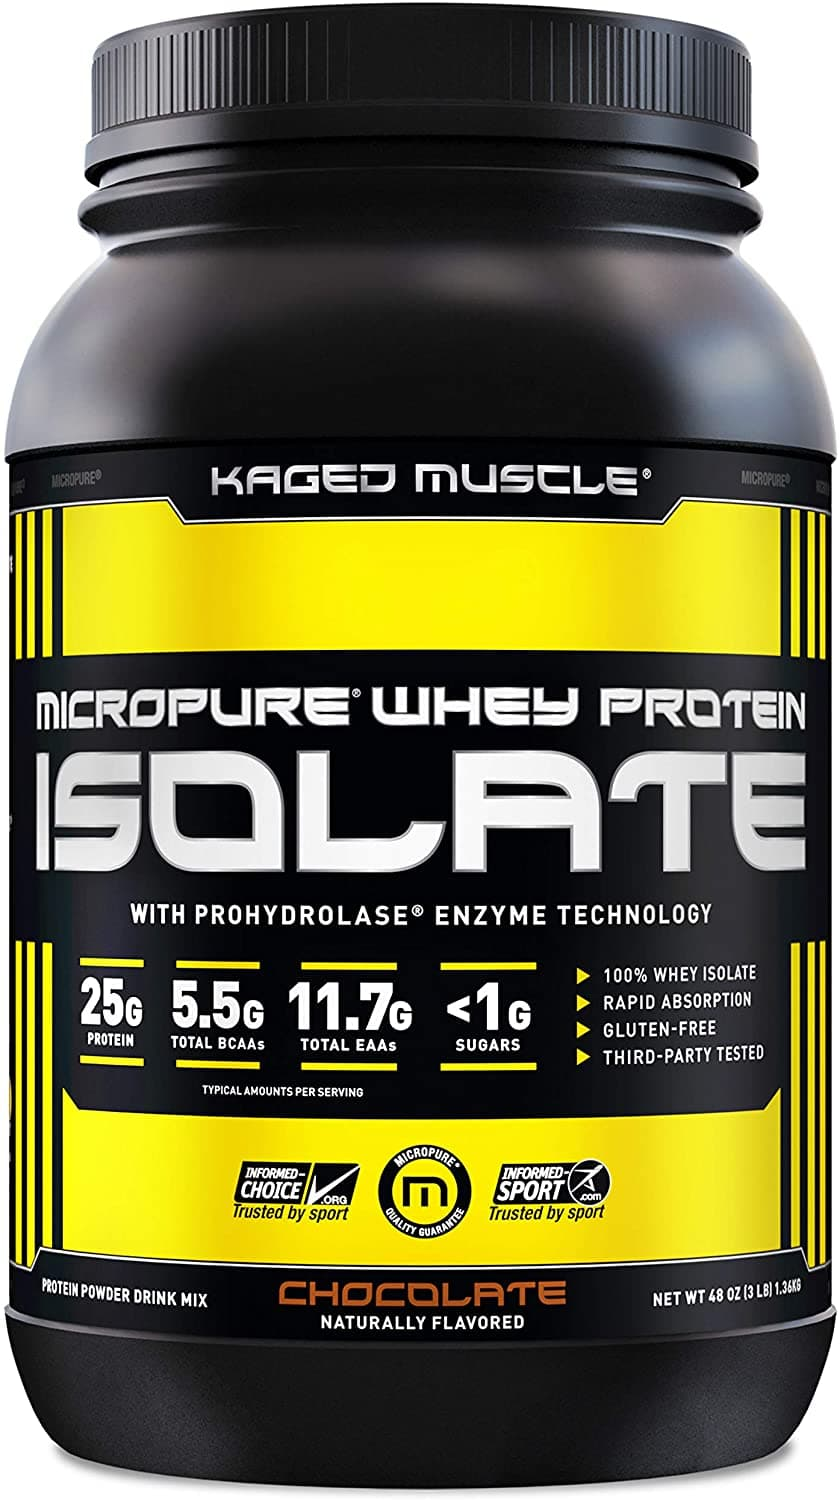 Micropure Whey Protein Isolate by Kaged Muscle